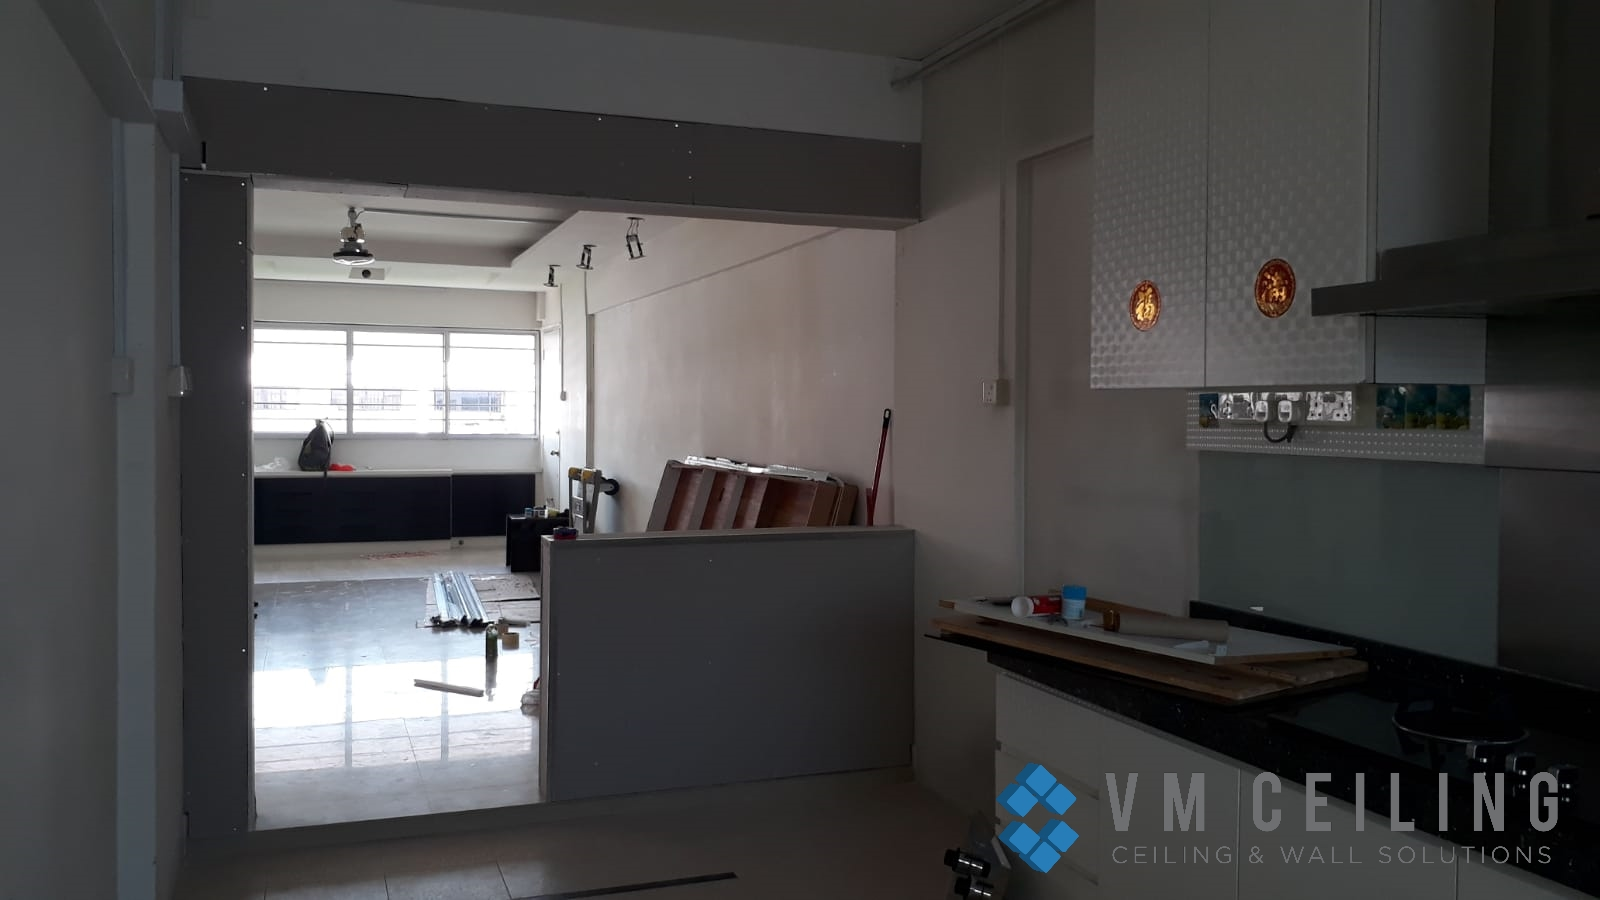 kitchen viewing glass sliding glass door vm ceiling singapore hdb yishun